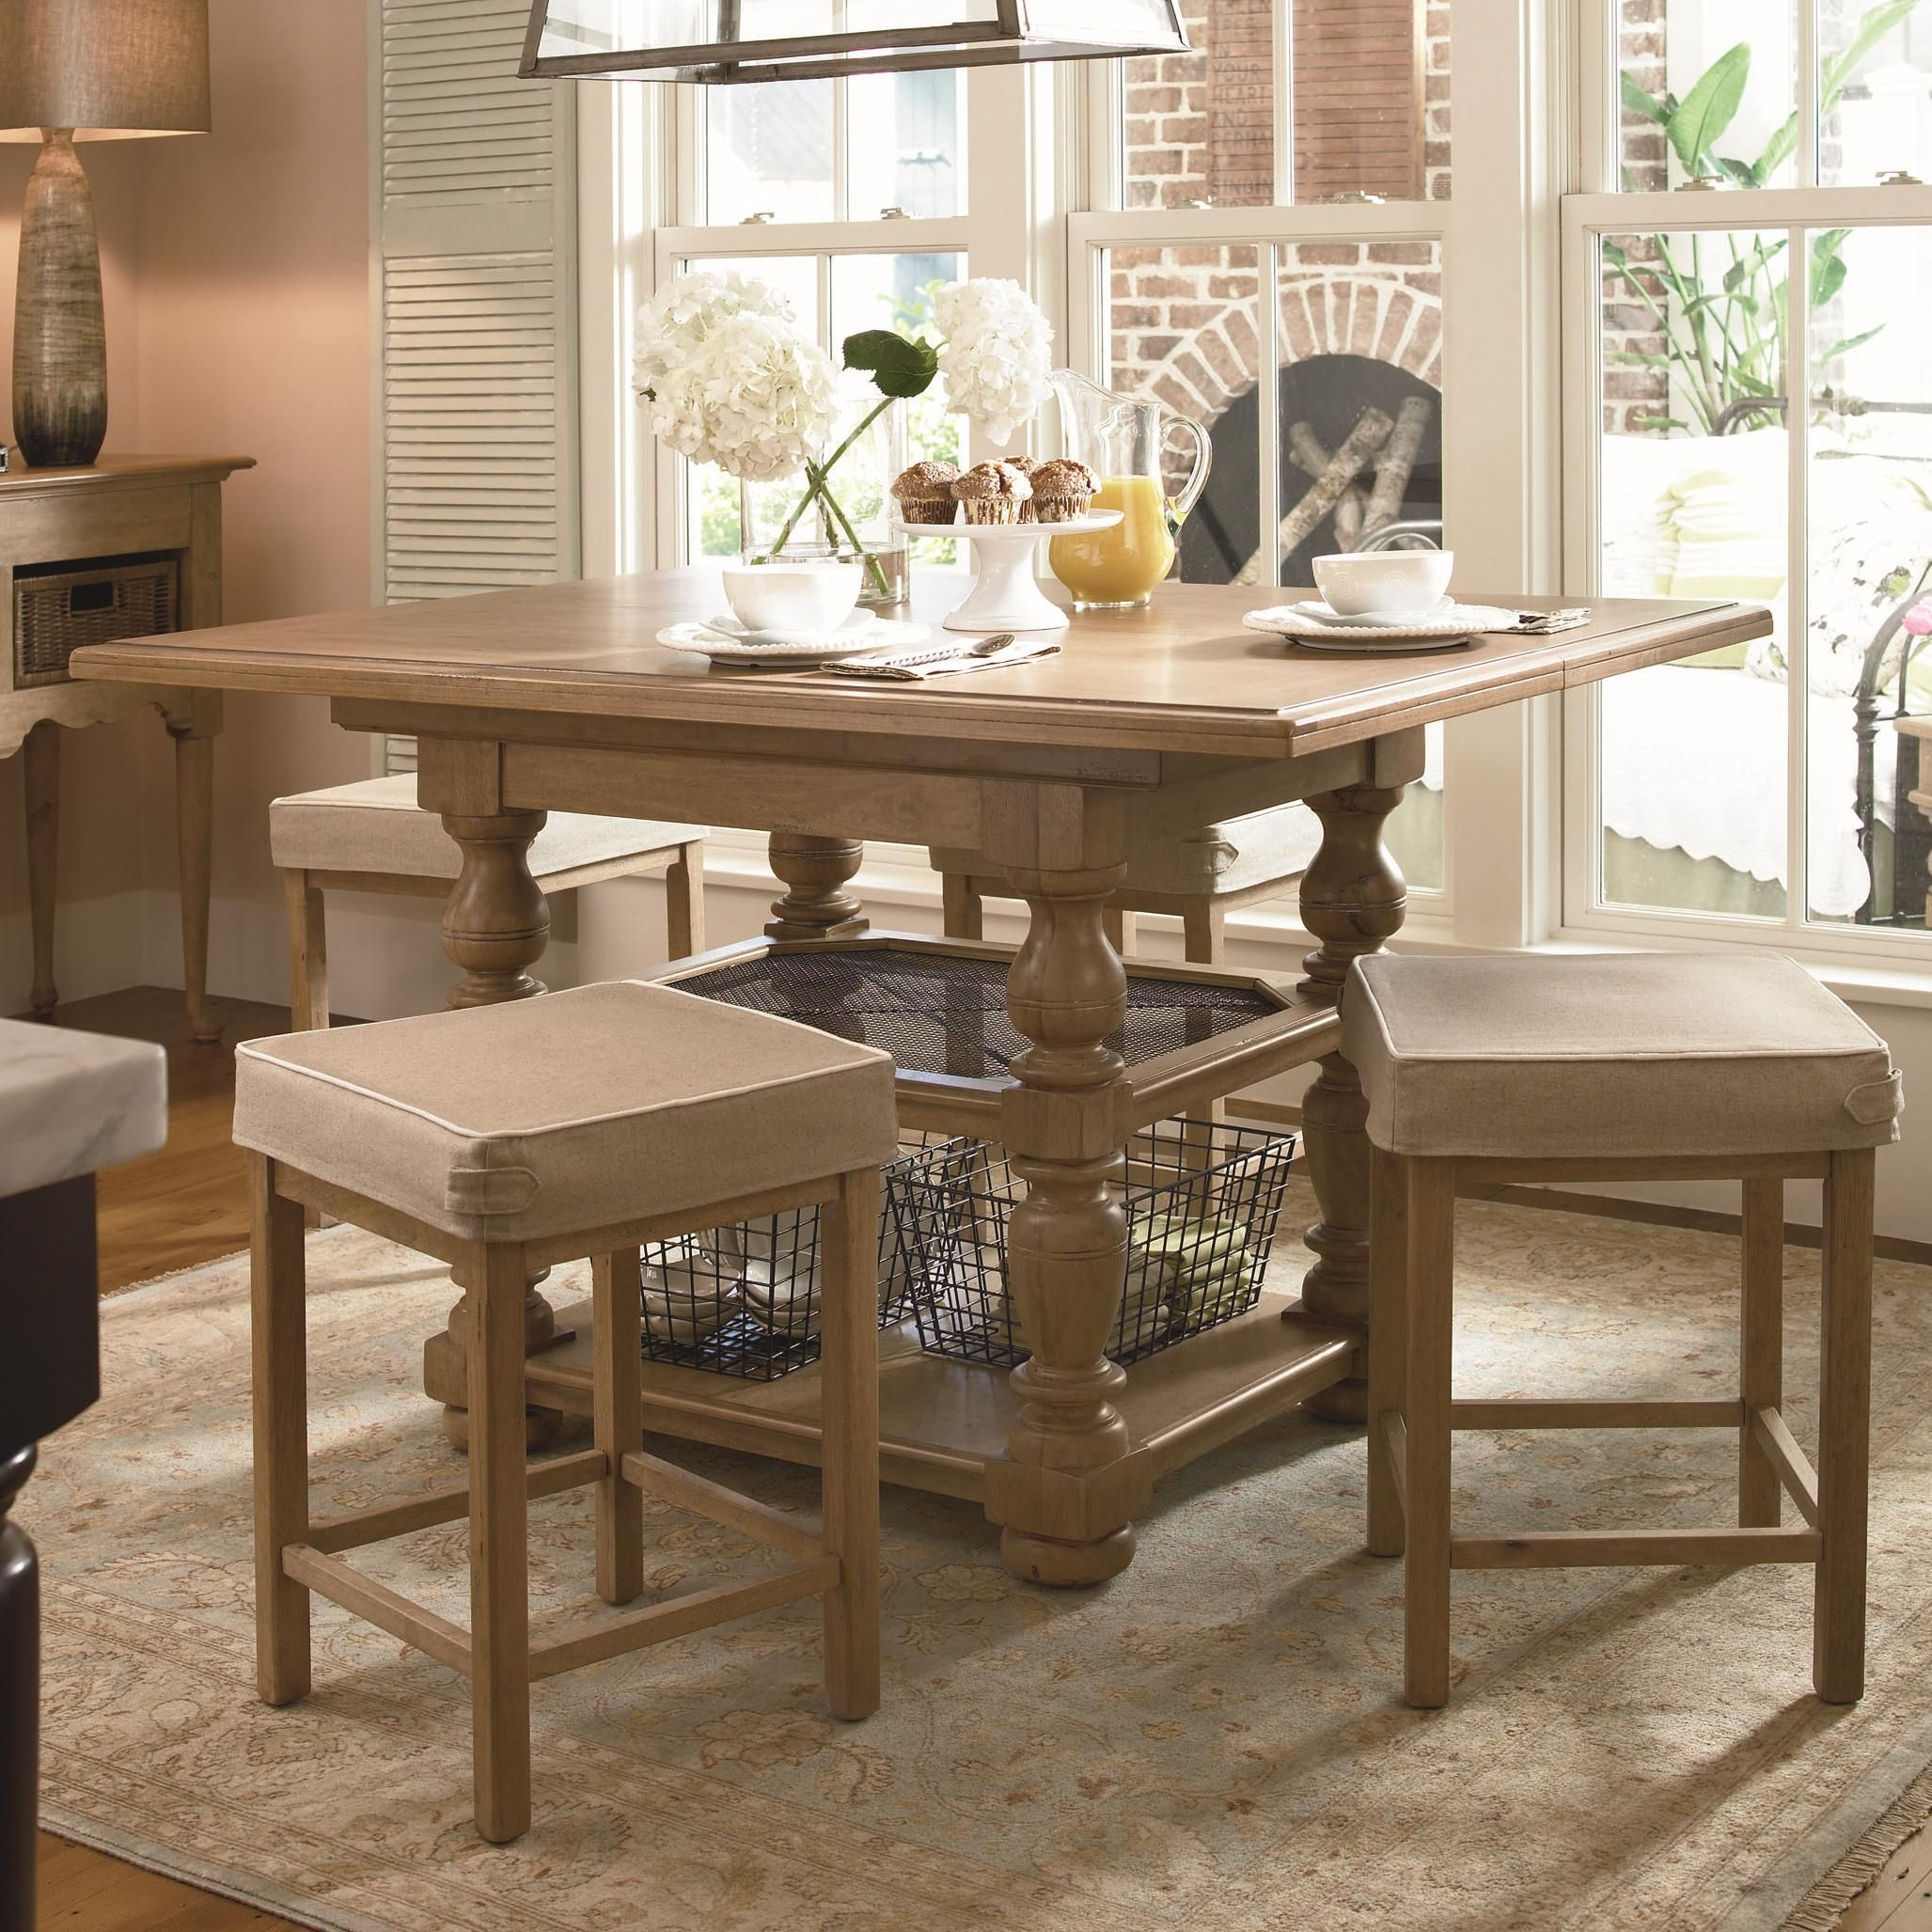 Down Home Gathering Table W/ Counter Stools By Paula Deen By Universal